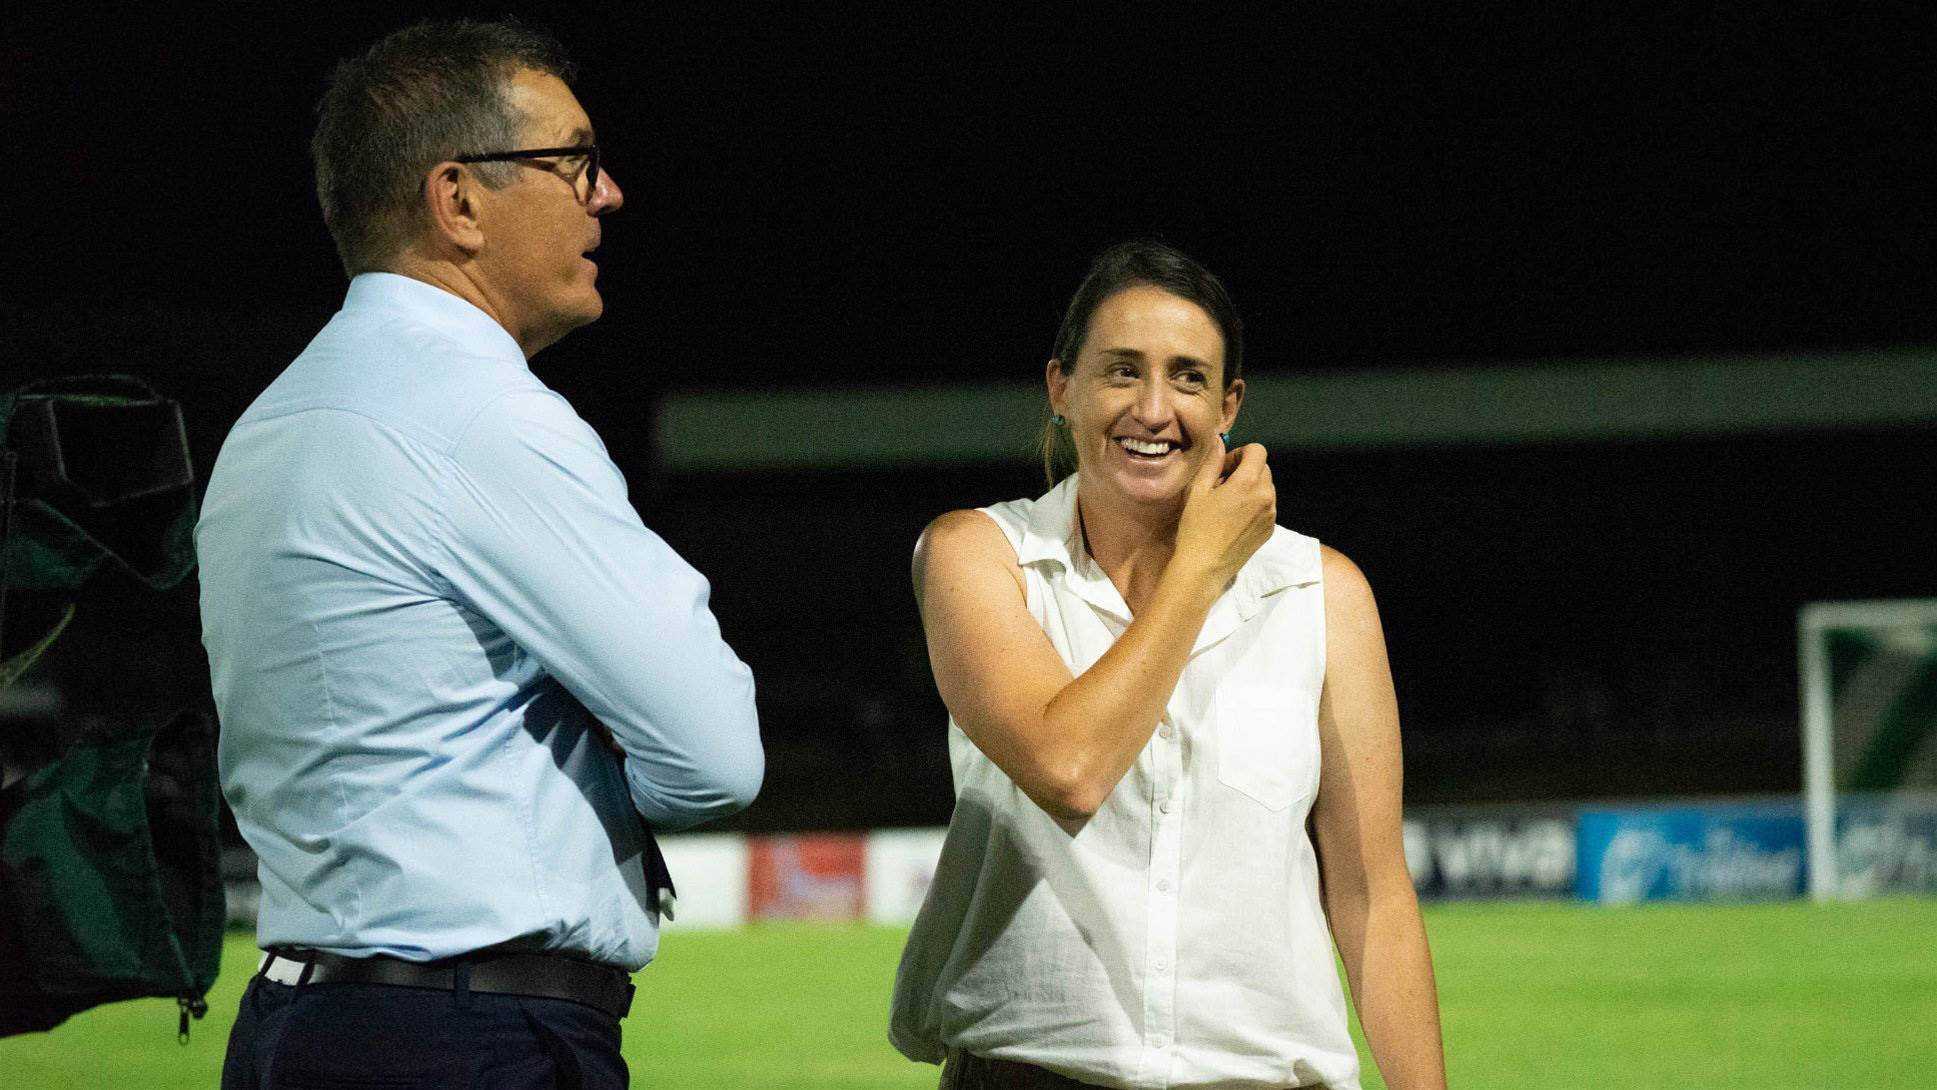 Garriock: The surprises in the Matildas squad